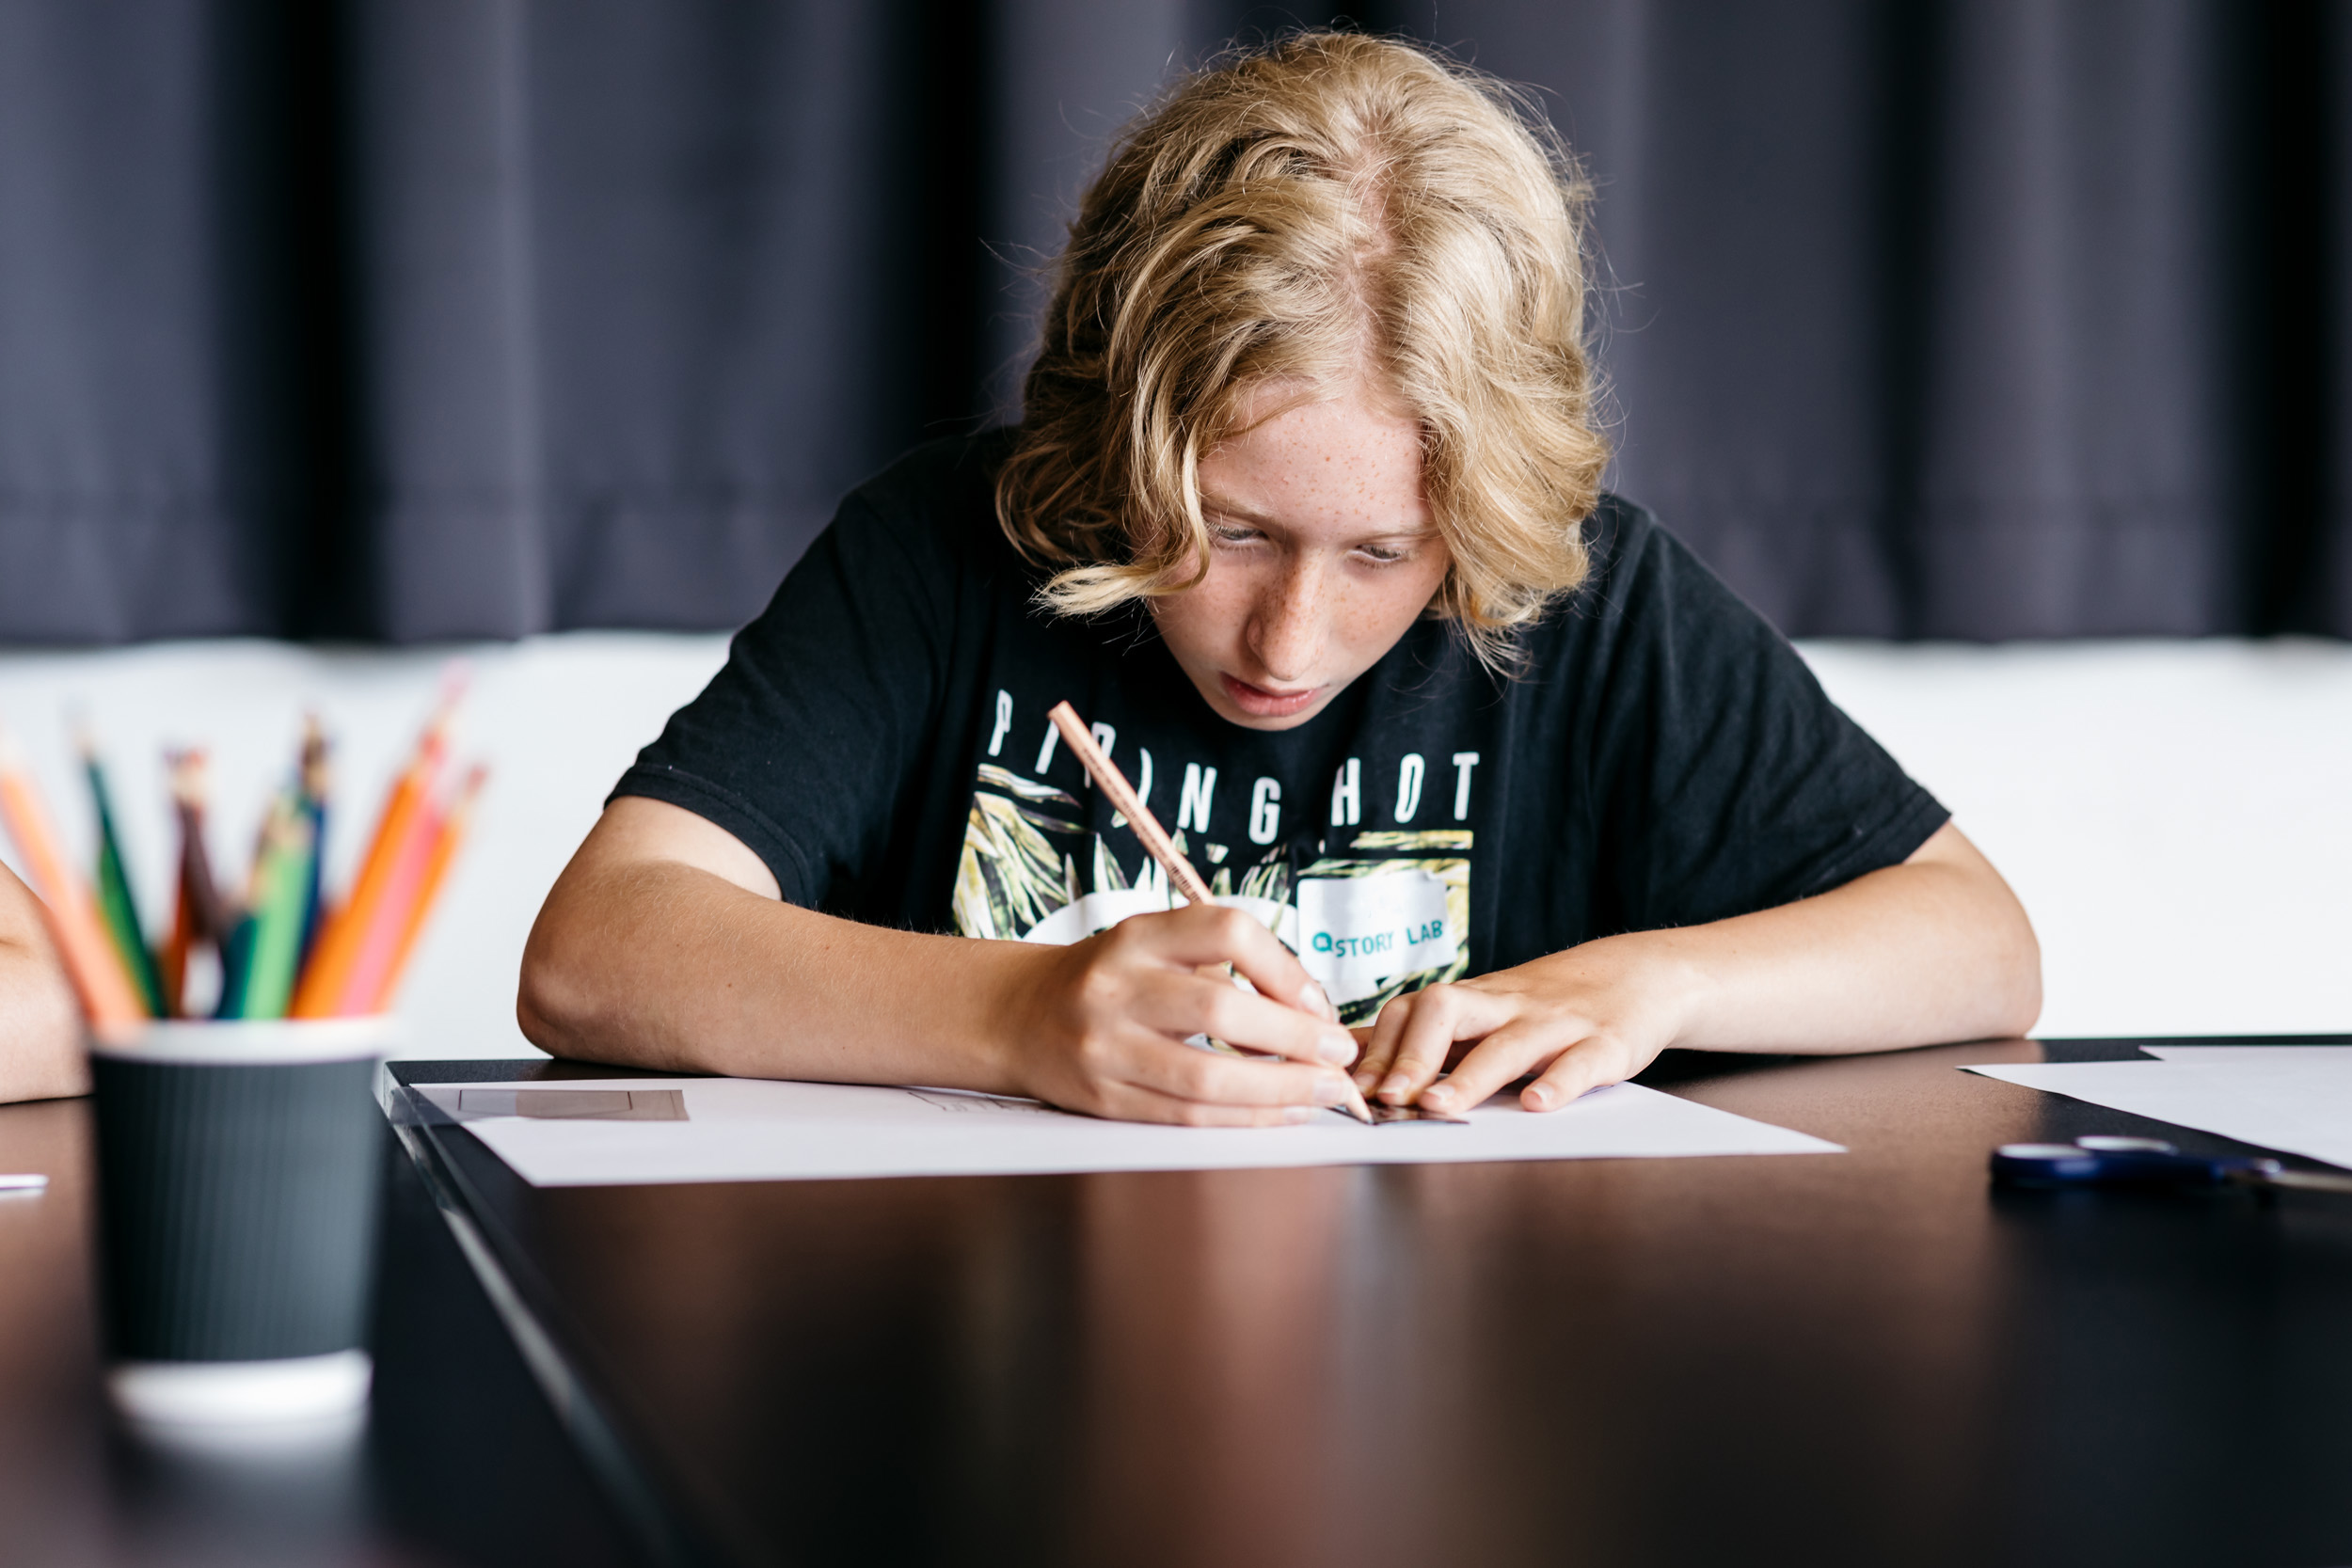 Teenager creating a book